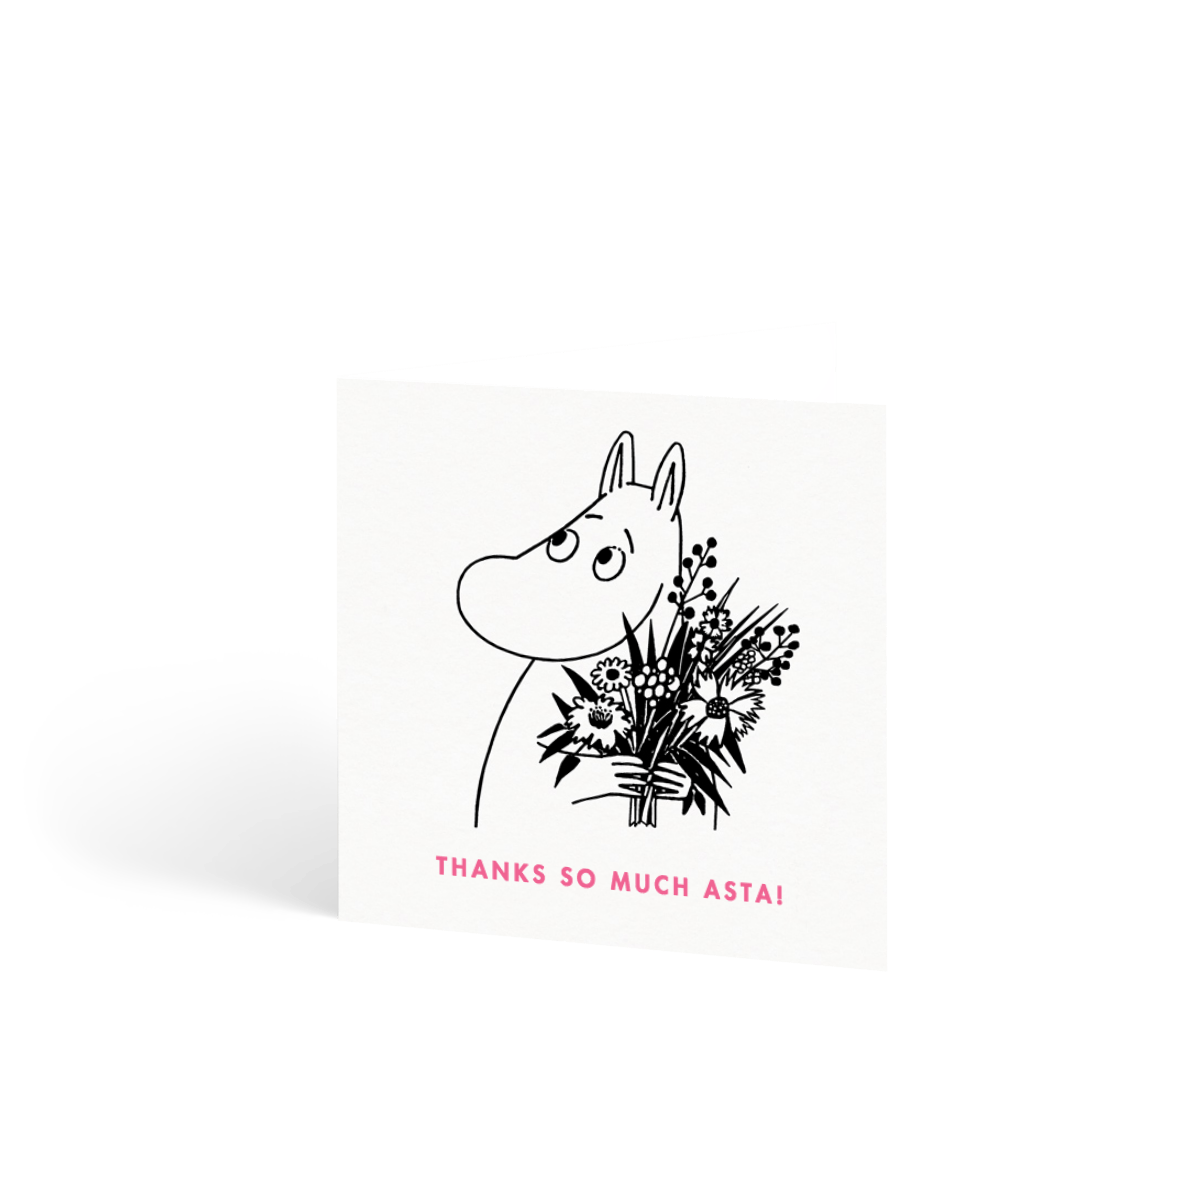 Https%3a%2f%2fwww.papier.com%2fproduct image%2f22737%2f16%2fmoomintroll with flowers 5710 front 1542300546.png?ixlib=rb 1.1